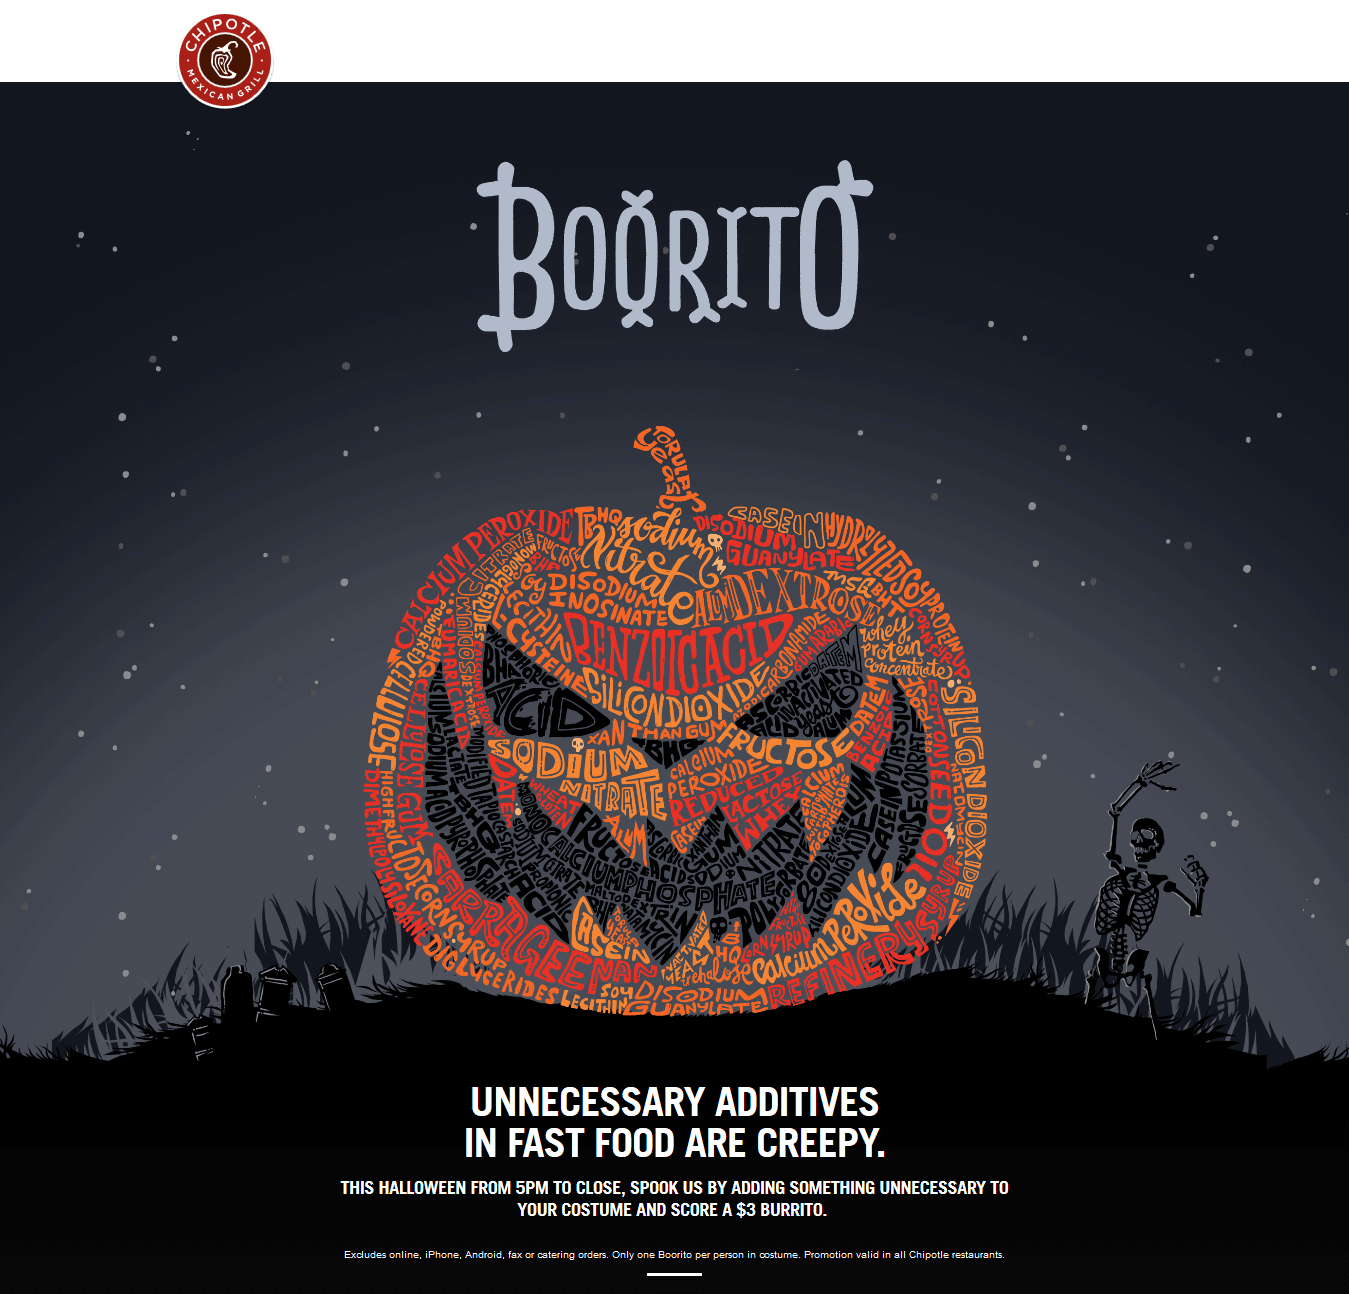 Chipotle Coupon August 2017 $3 burritos in costume Halloween at Chipotle